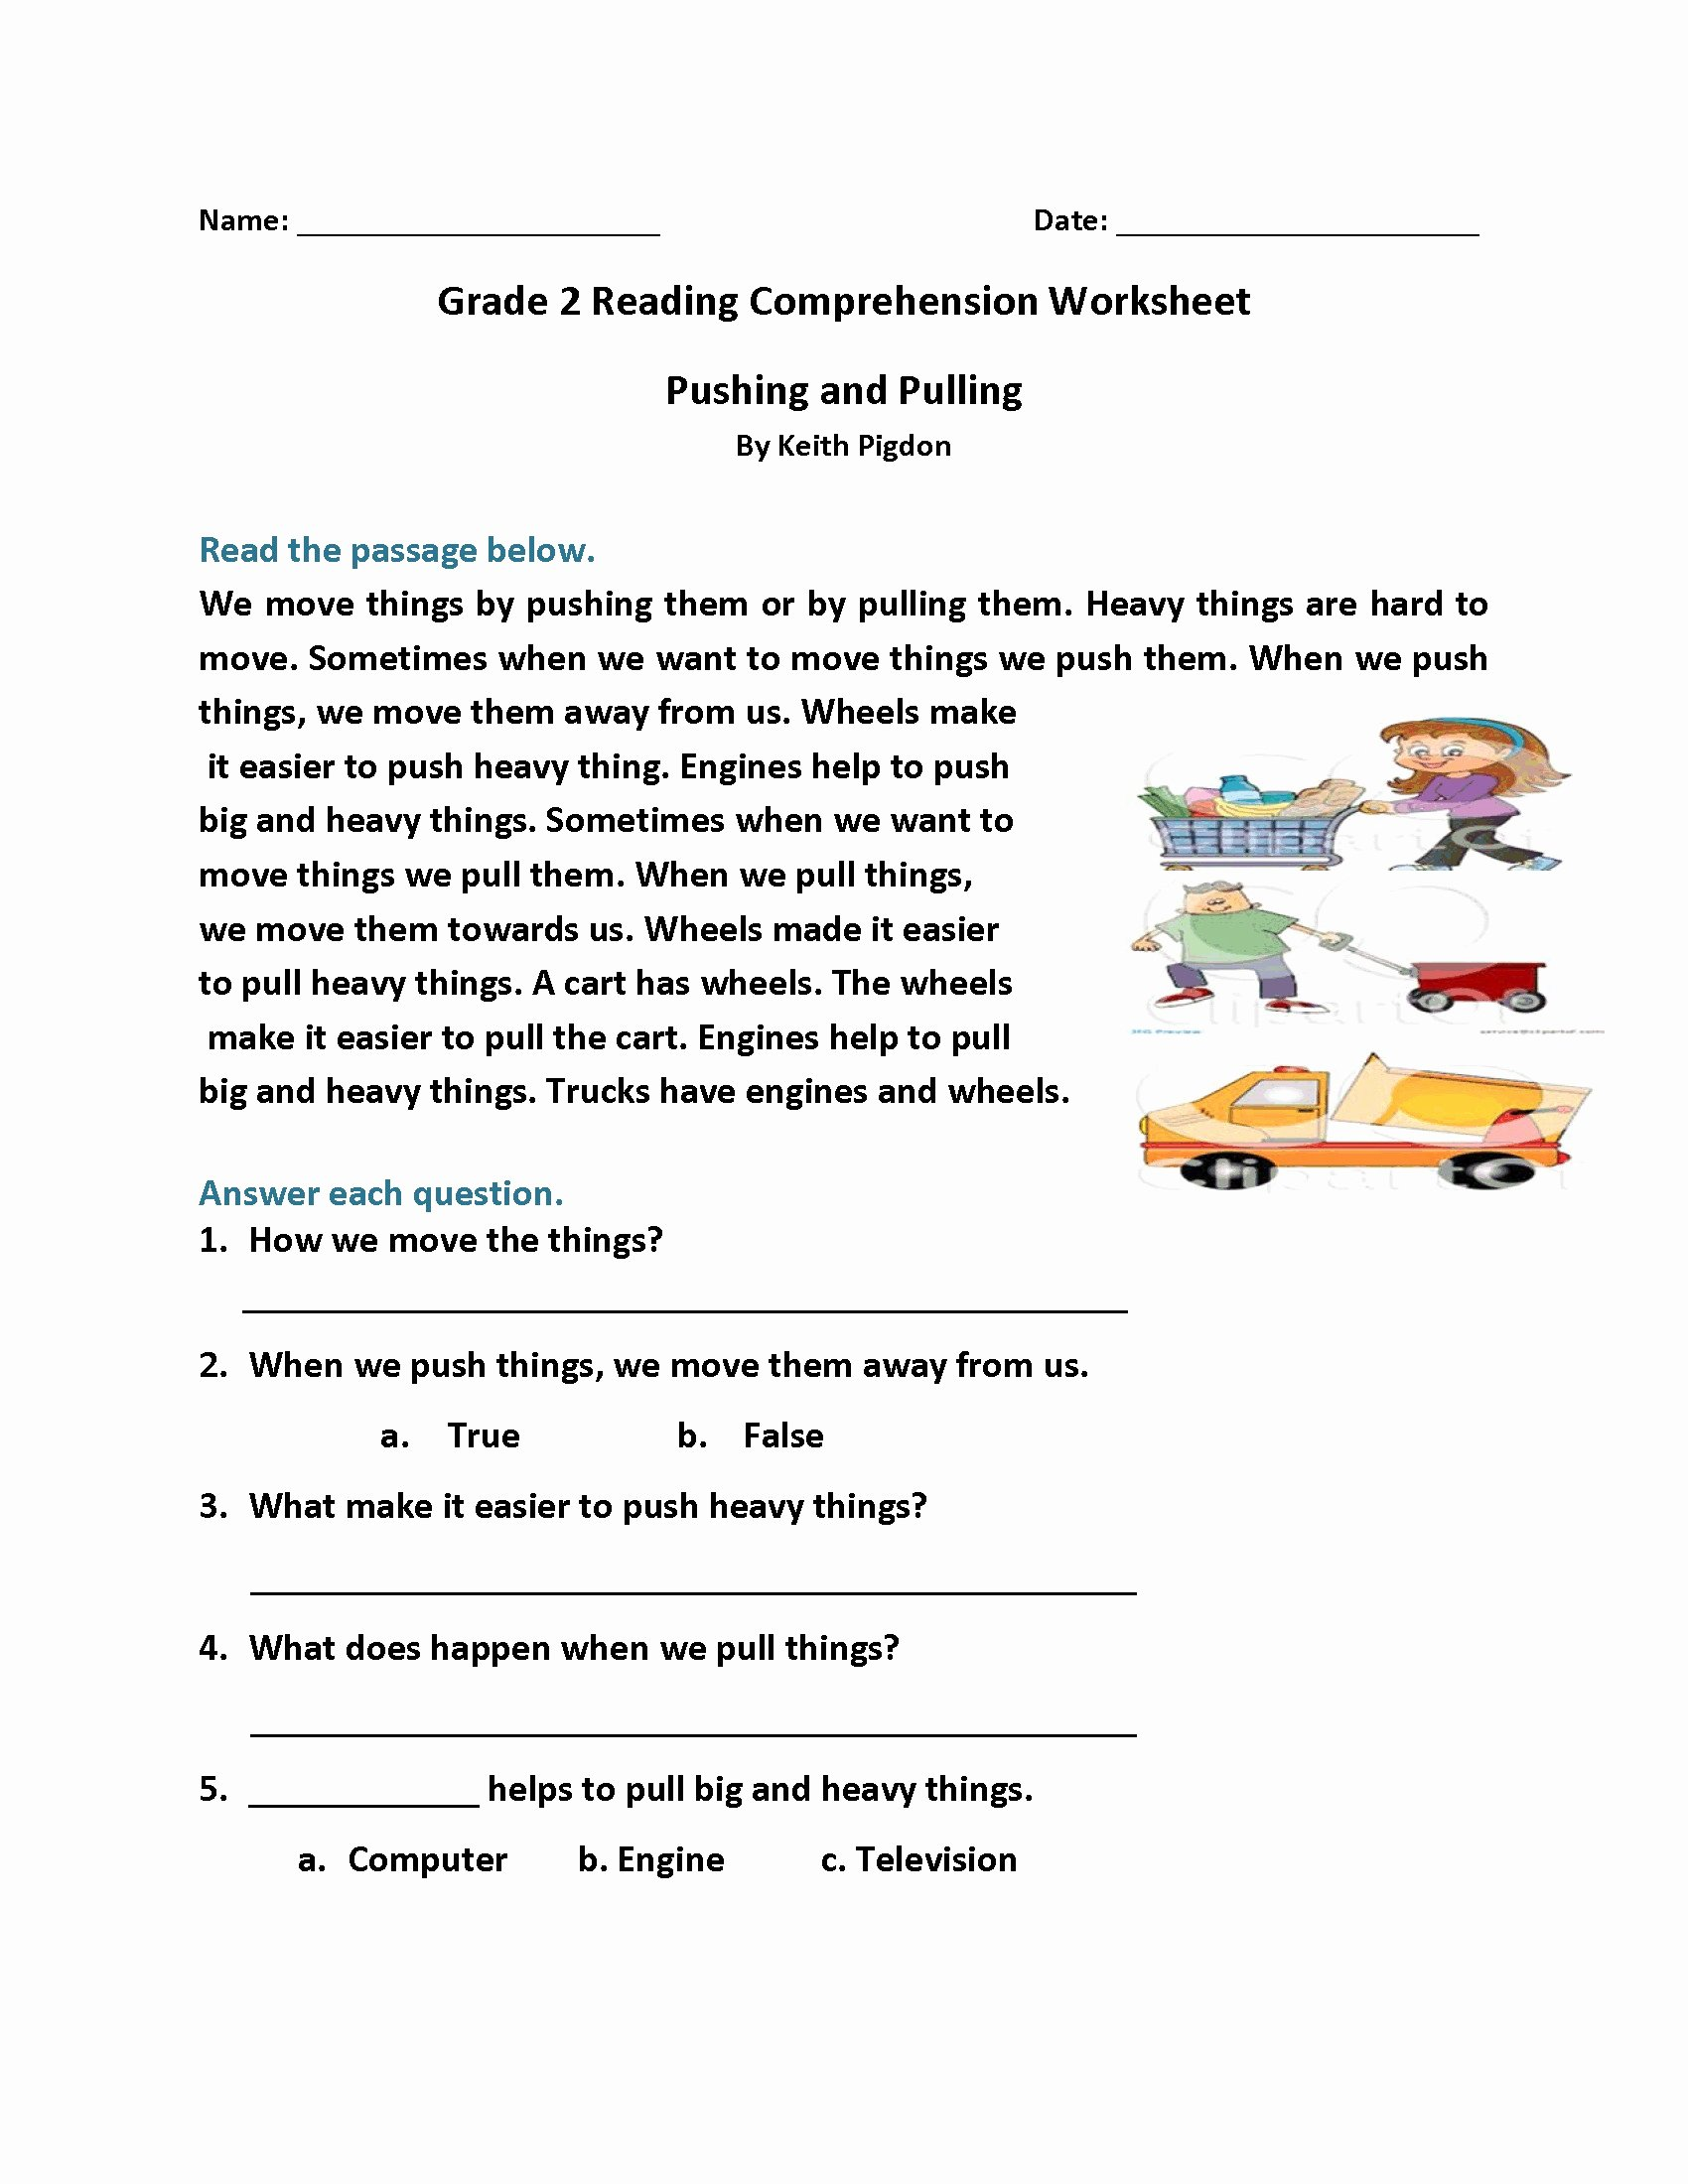 Grade 2 Reading Comprehension Worksheets top Math Worksheet 2nd Gradeading Worksheets Best Coloring